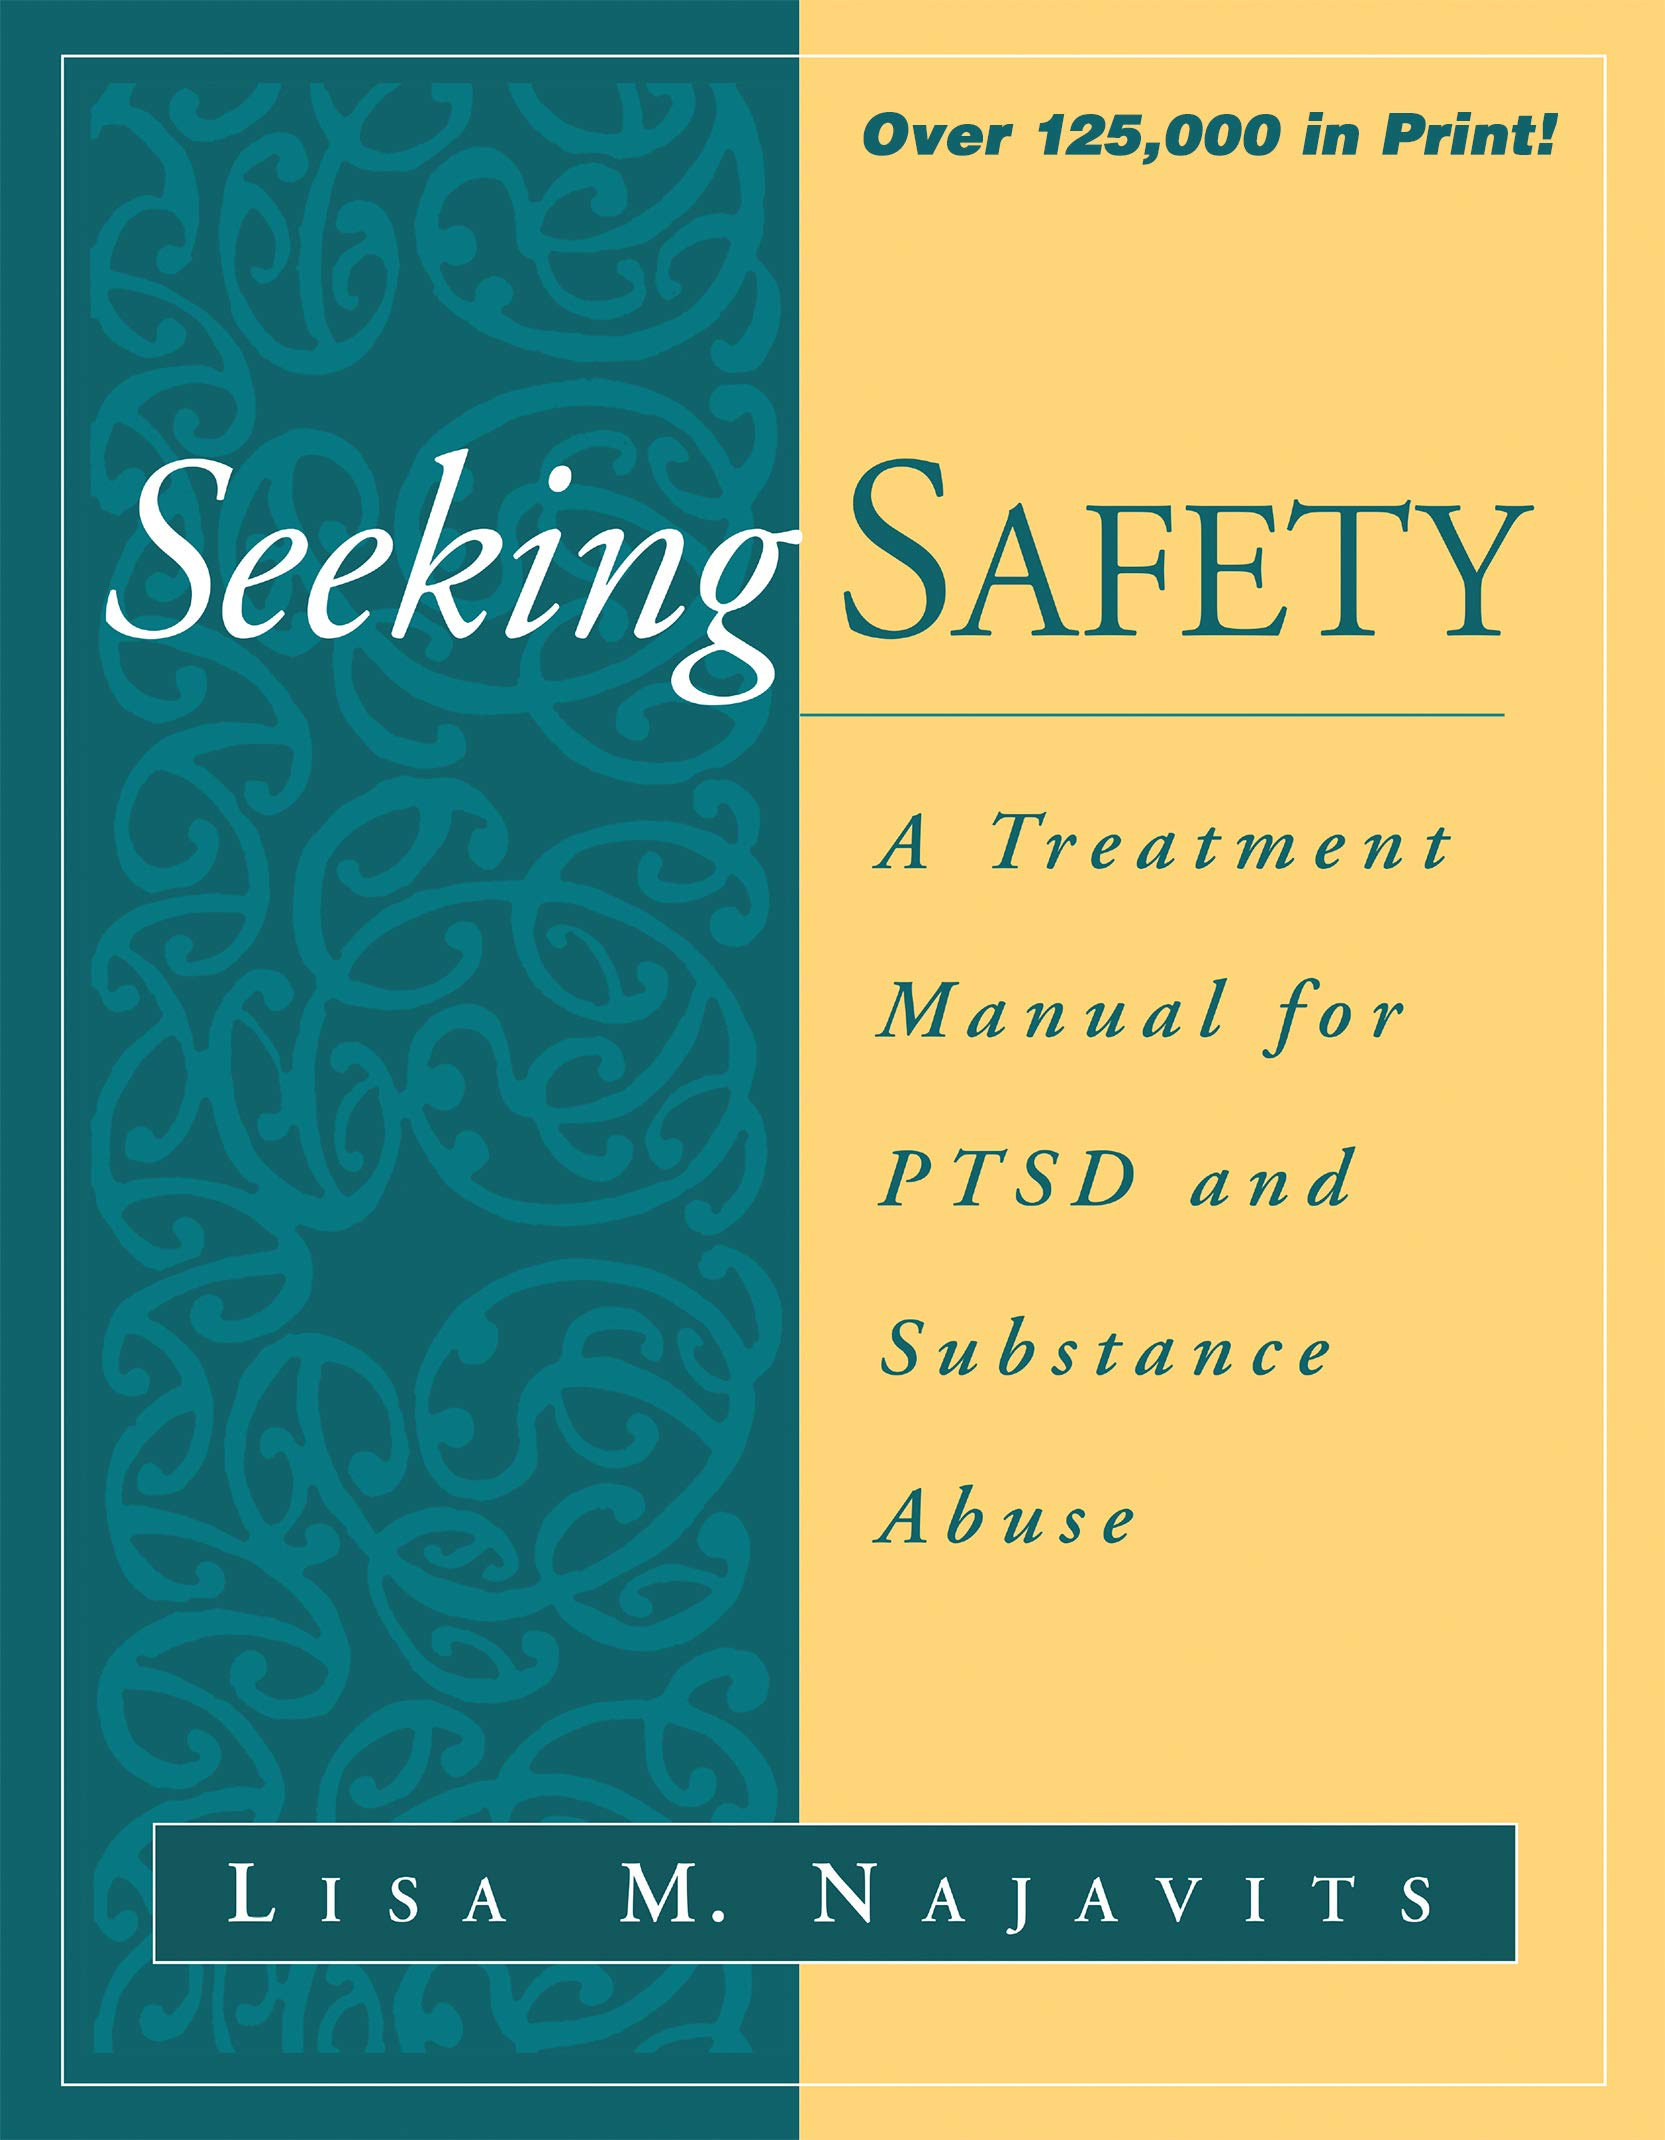 Seeking Safety: A Treatment Manual for PTSD and Substance Abuse (The Guilford Substance Abuse Series) by The Guilford Press